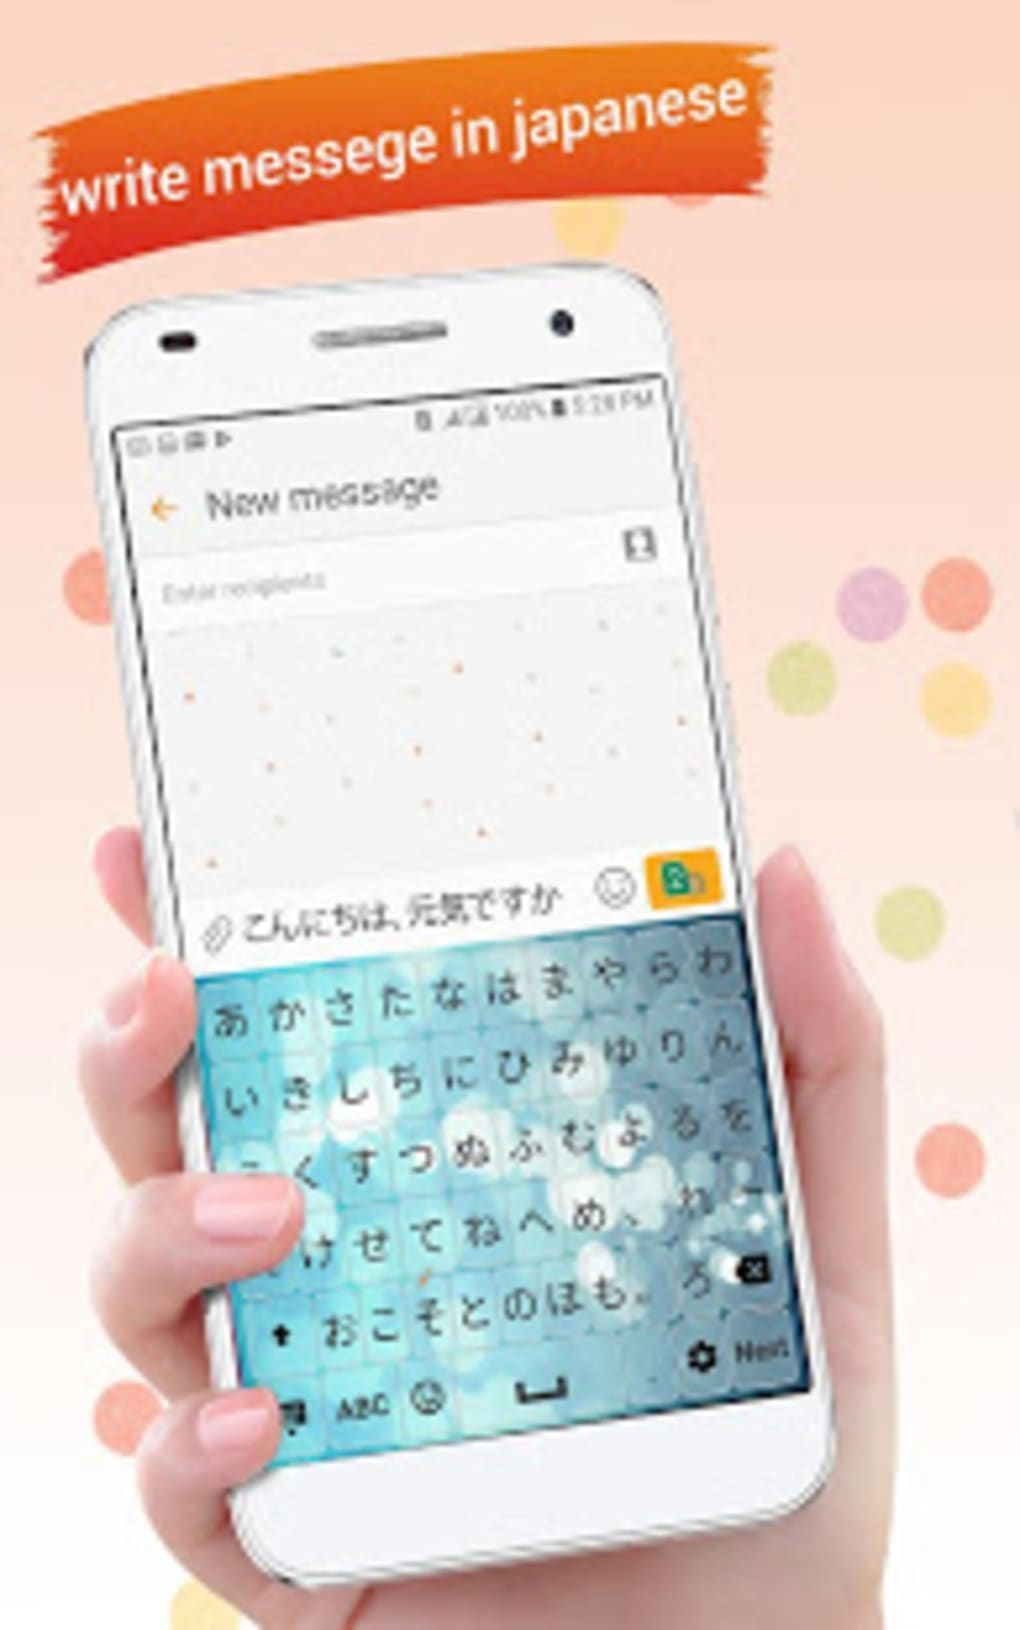 Japanese Keyboard for Android - Download